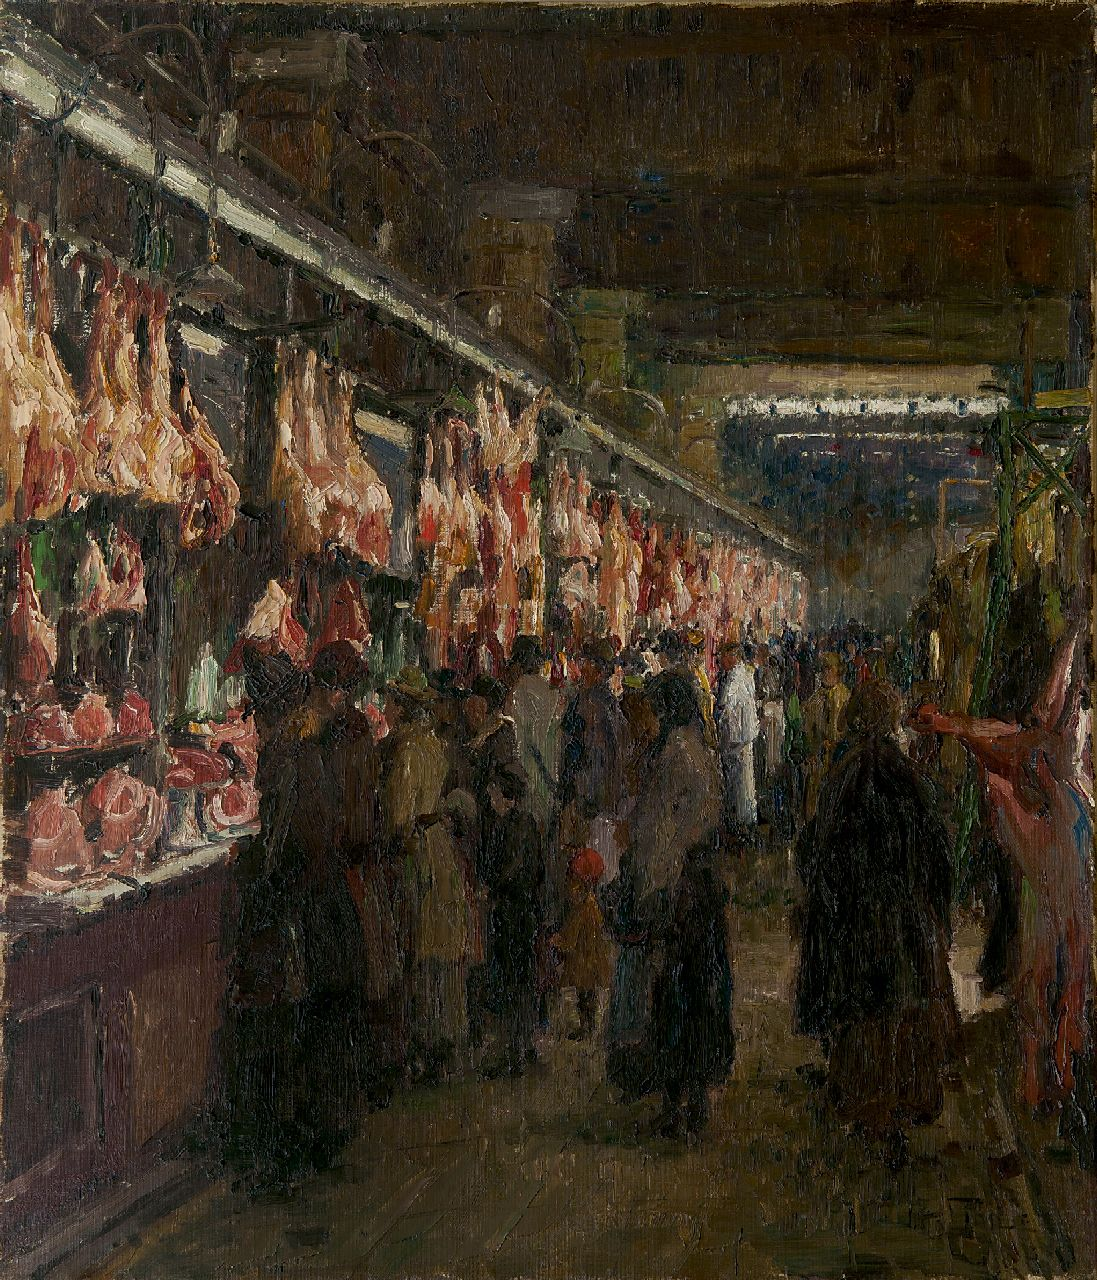 Otto Thiele | Meat hall, oil on canvas, 70.4 x 60.4 cm, signed l.r.